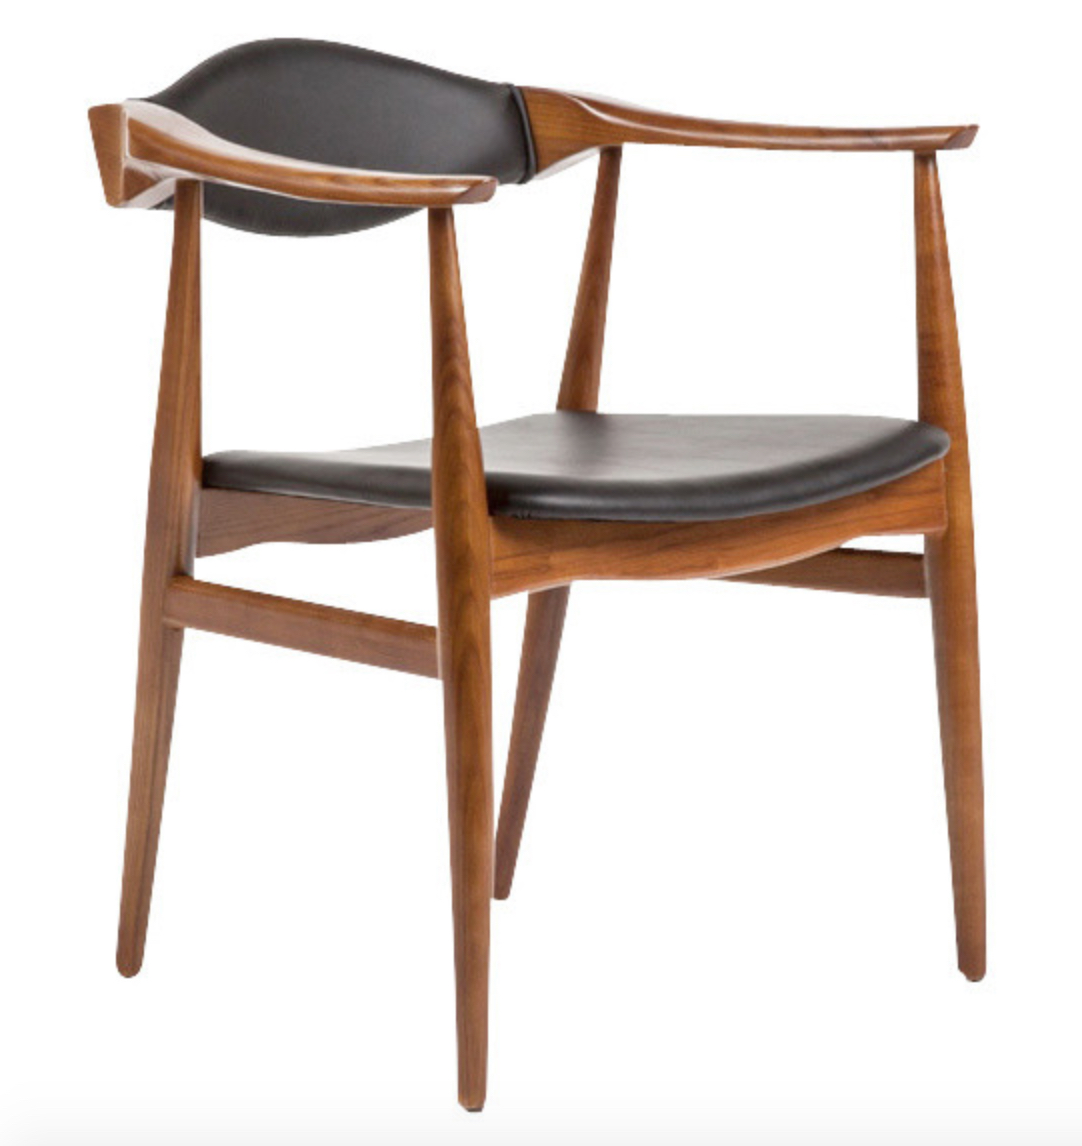 danish-chair-walnut.jpg